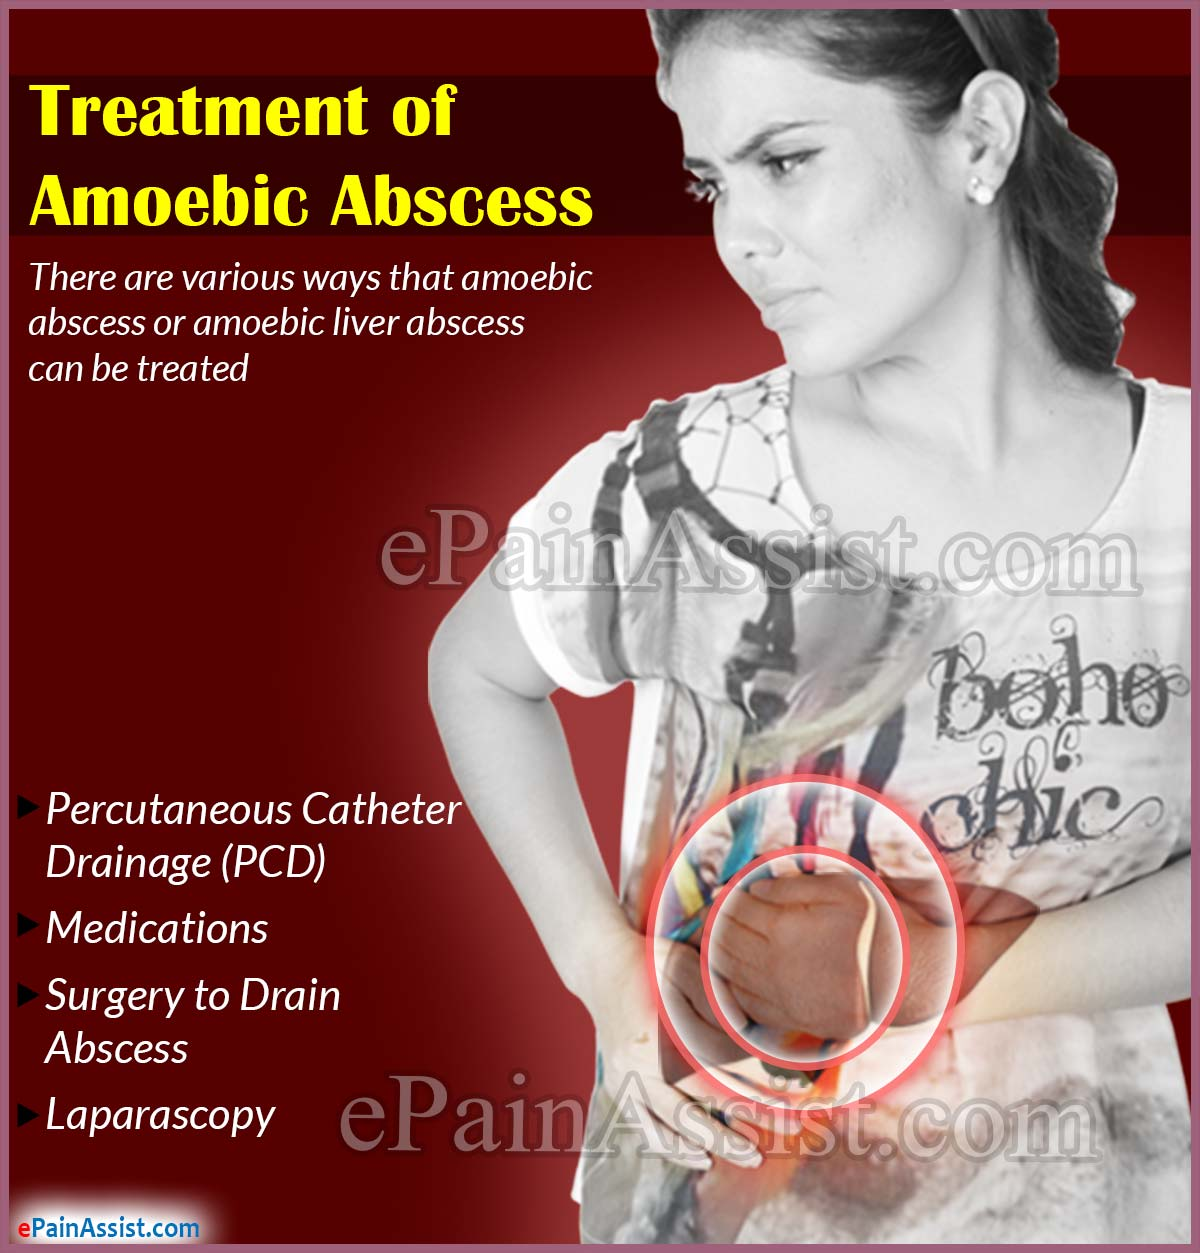 Treatment of Amoebic Abscess or Amoebic Liver Abscess